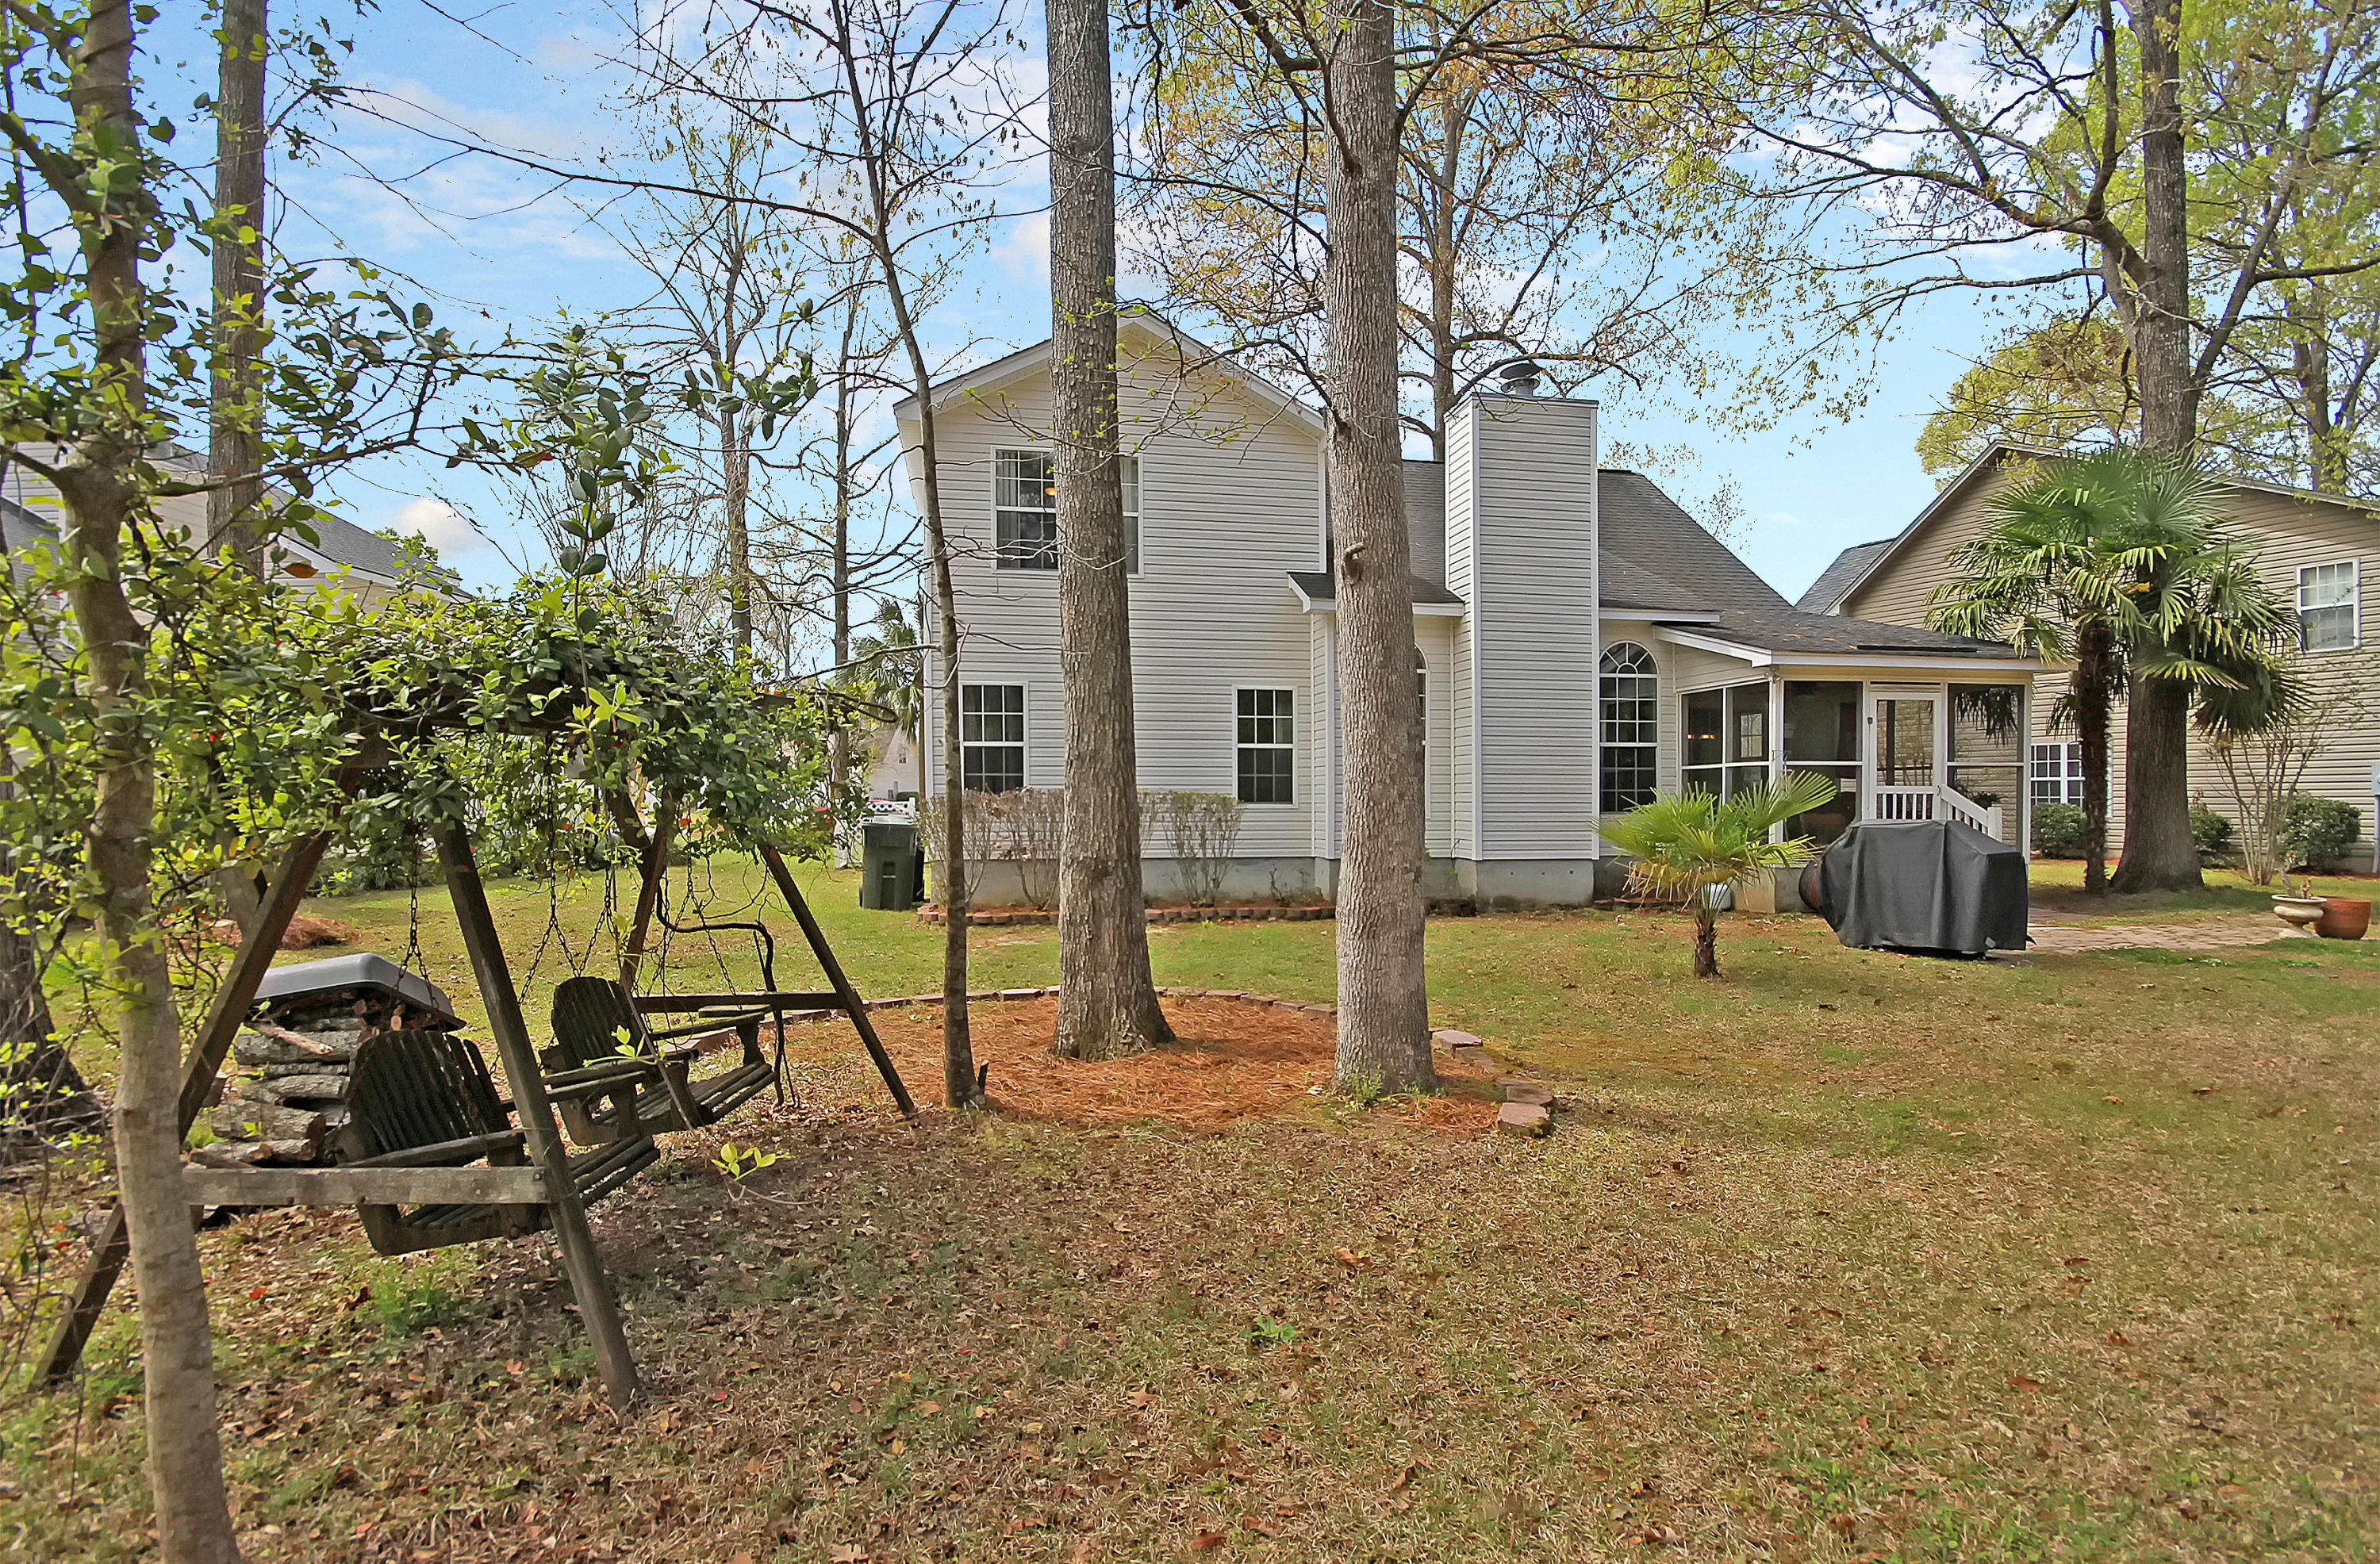 Photo of 134 Tattingstone Way, Goose Creek, SC 29445